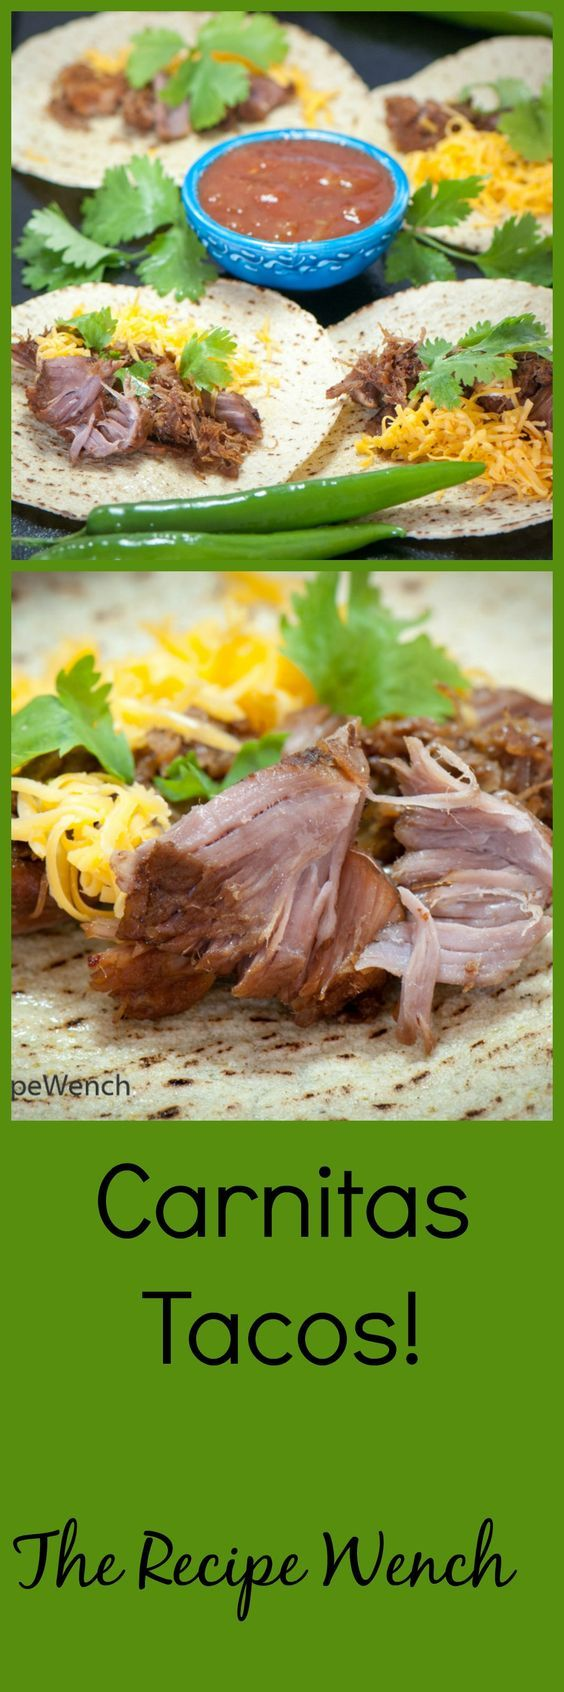 Carnitas Tacos!  So super easy to make, you can treat your friends and loved ones to carnitas regularly!: